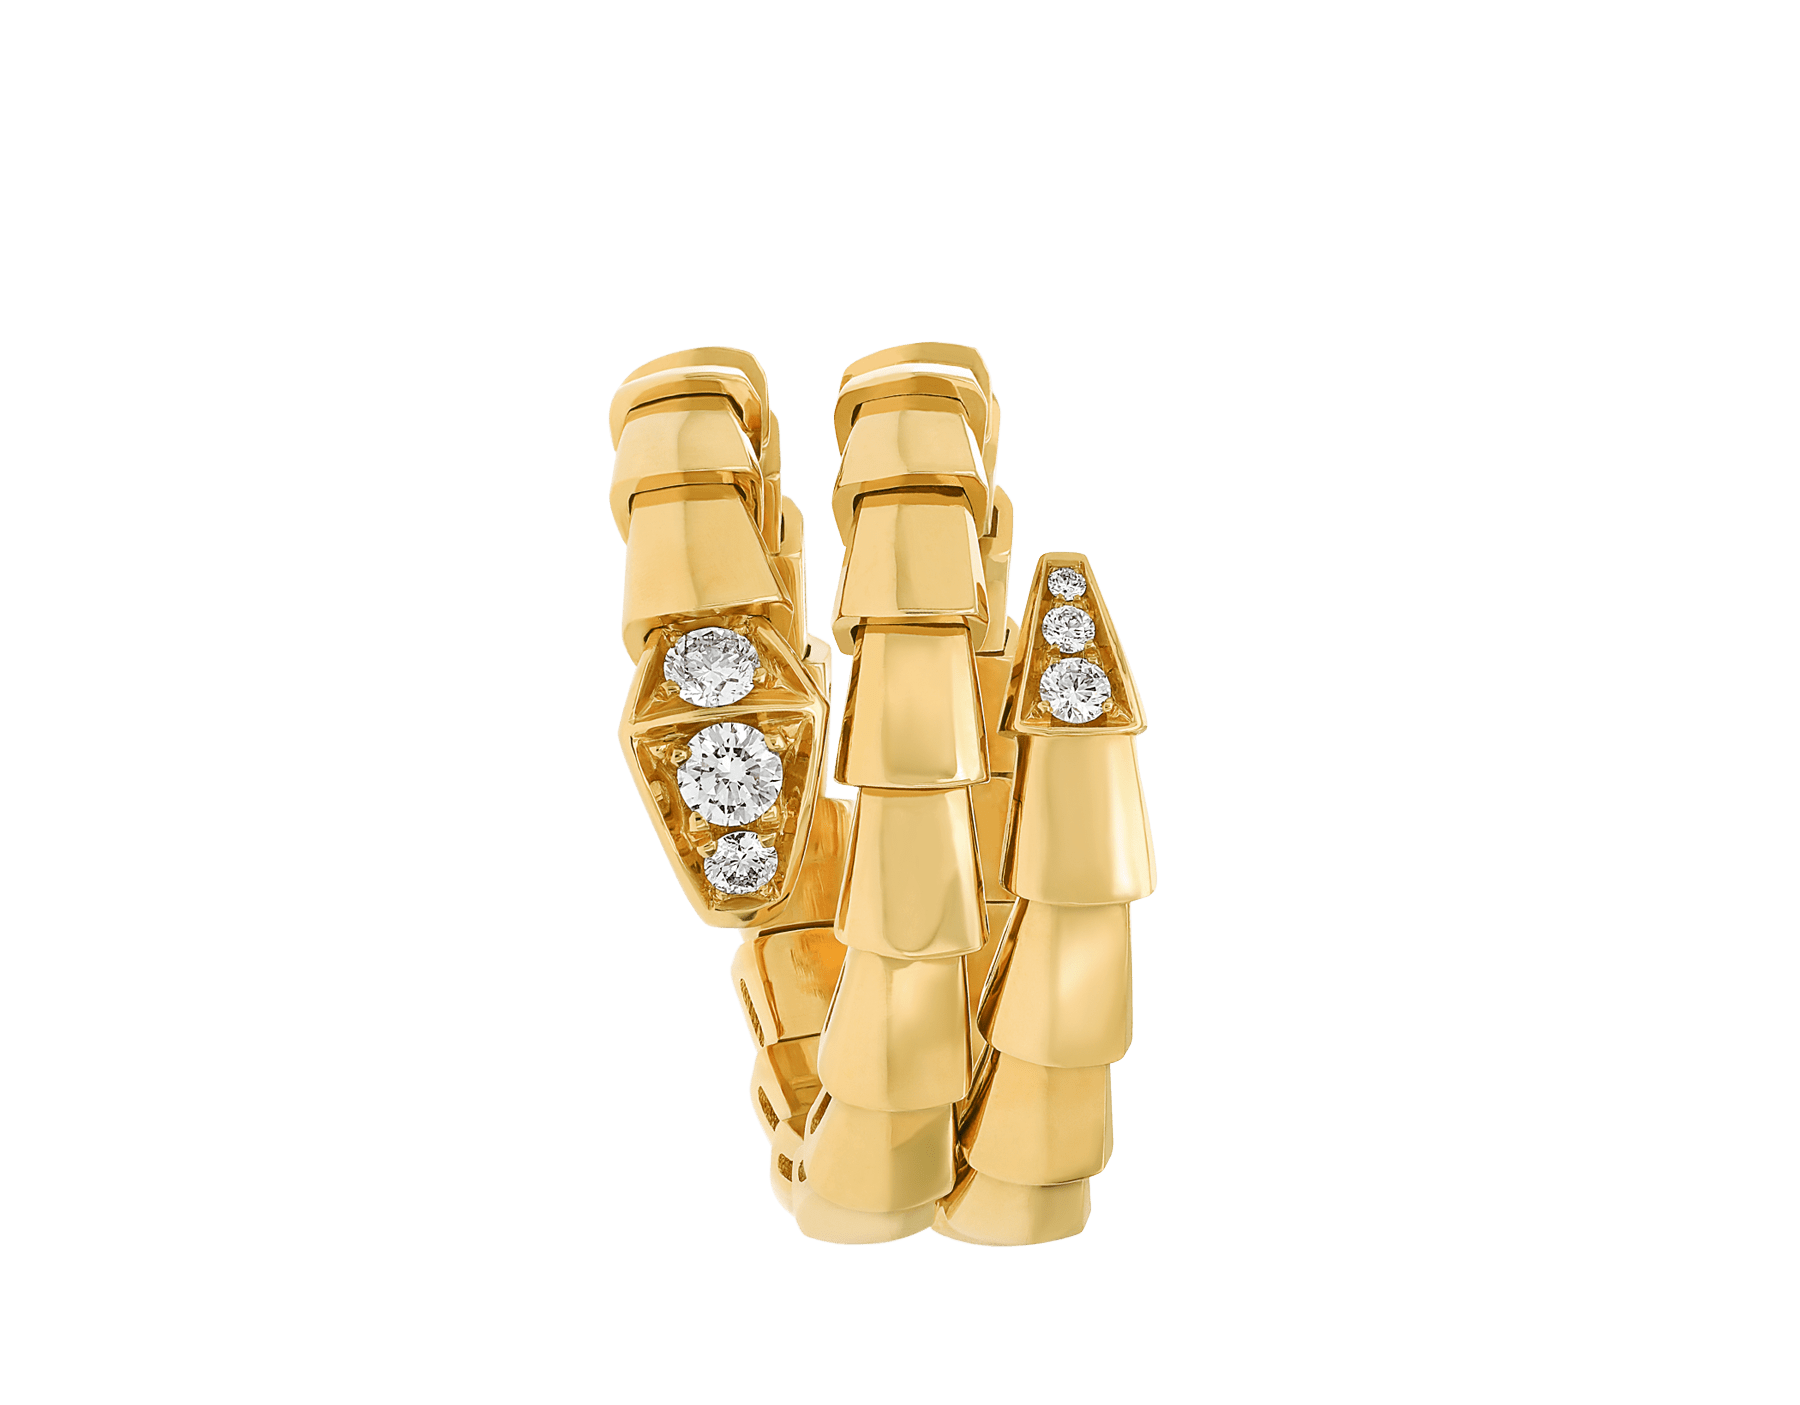 Serpenti Viper 18 kt yellow gold two-coil ring set with demi-pavé diamonds AN858970 image 3